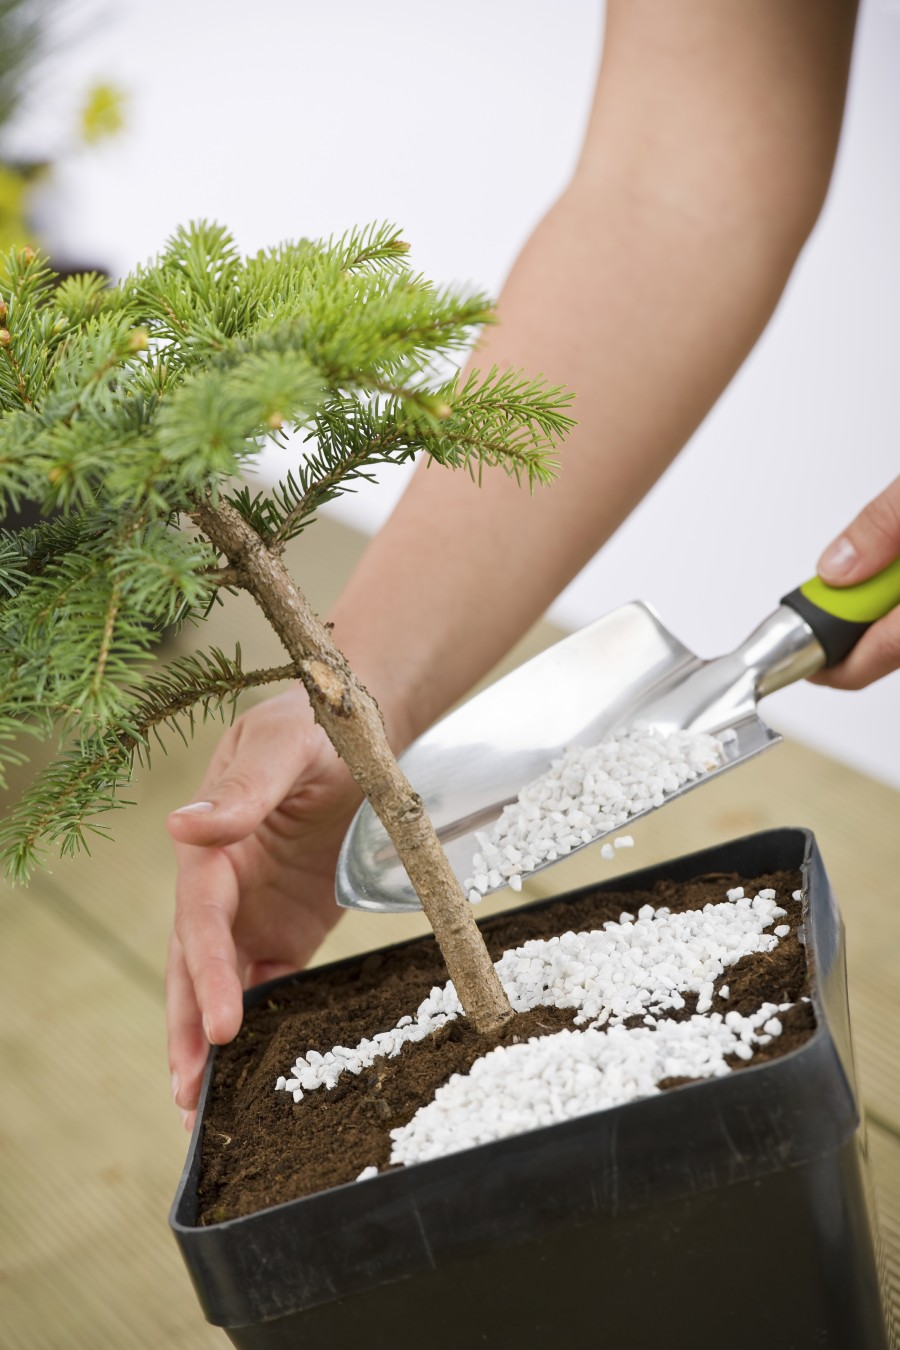 Vital Tools to Care for Your Bonsai.There are many bonsai tools that are used when designing and caring for your bonsai trees.